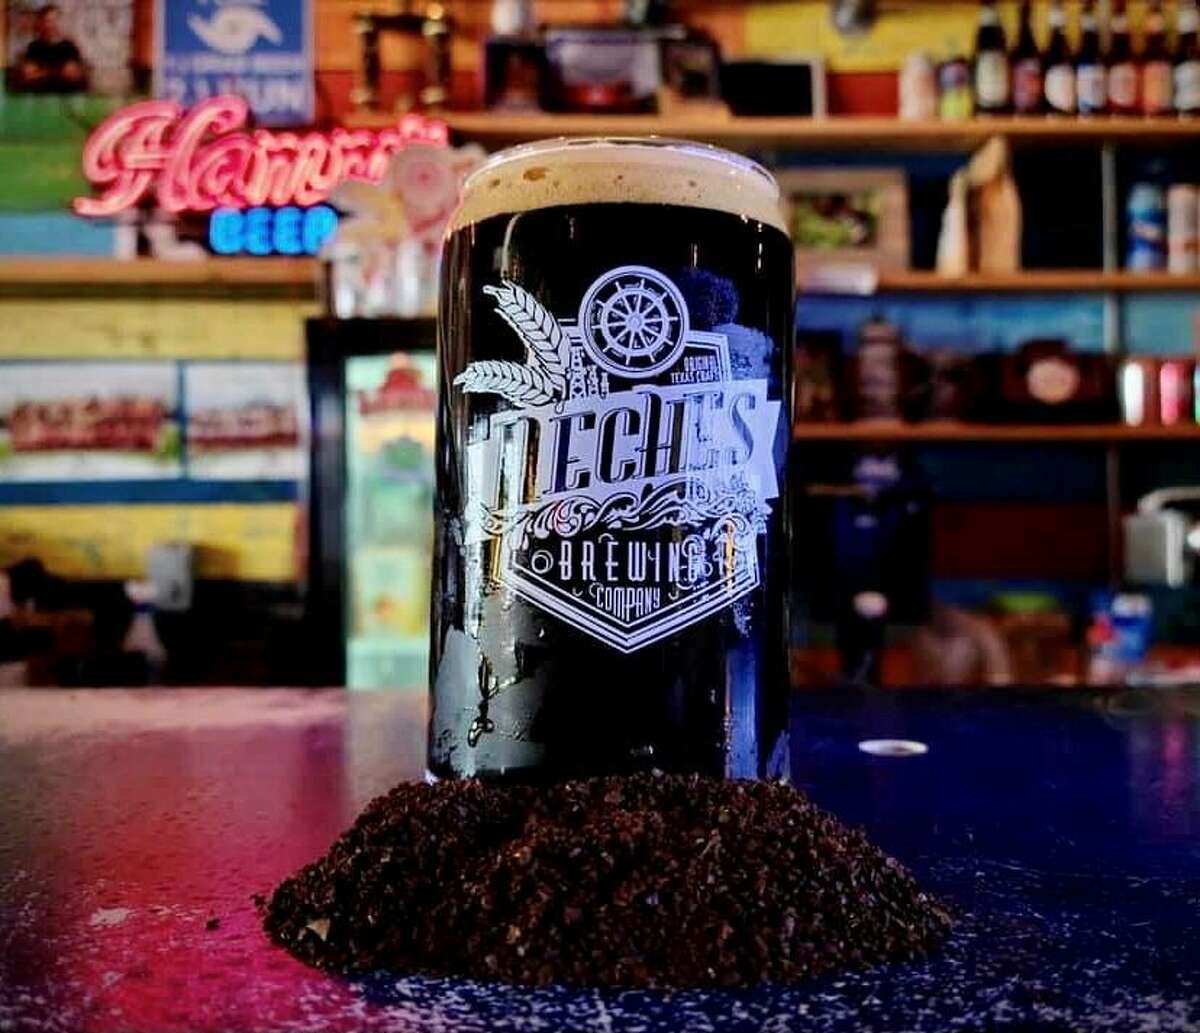 """Rao's Bakery & Coffee Café and Neches Brewing Company are partnering to create a fan favorite at the Port Neches Brewery, the """"Big Floyd Stout,"""" -this time, with Rao's attitude."""